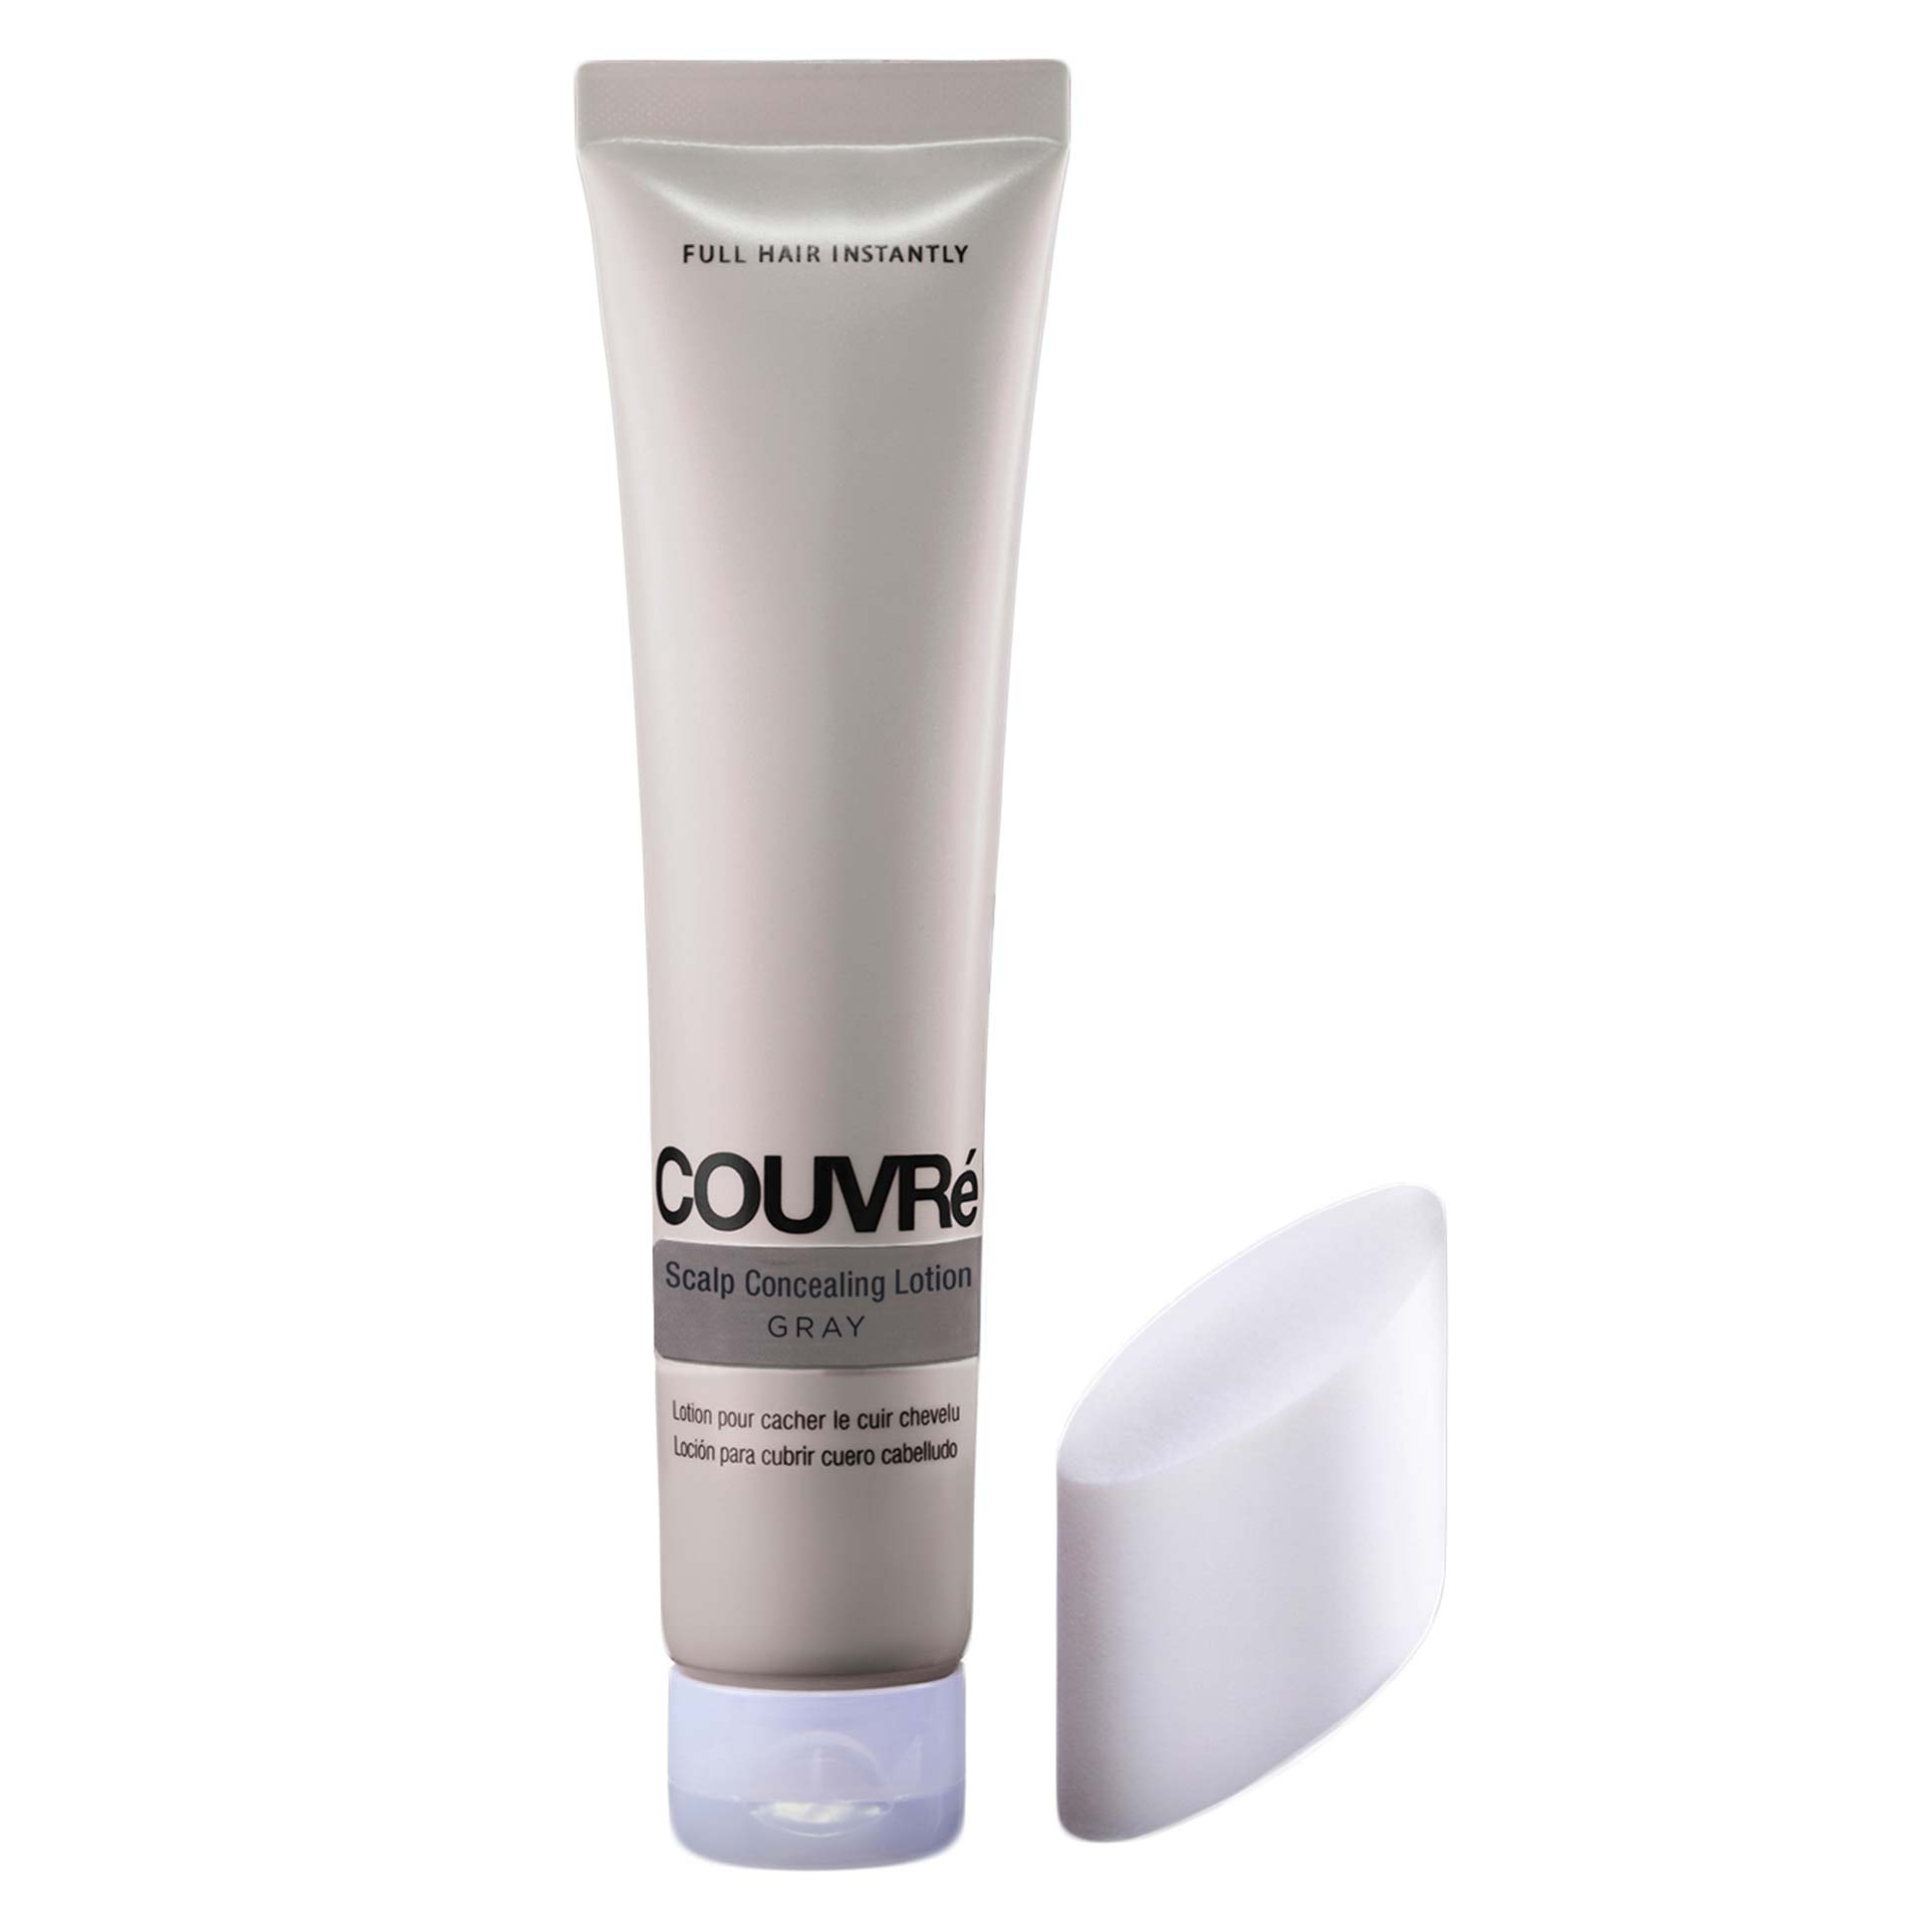 SCALP CONCEALING LOTION - GRAY GG4